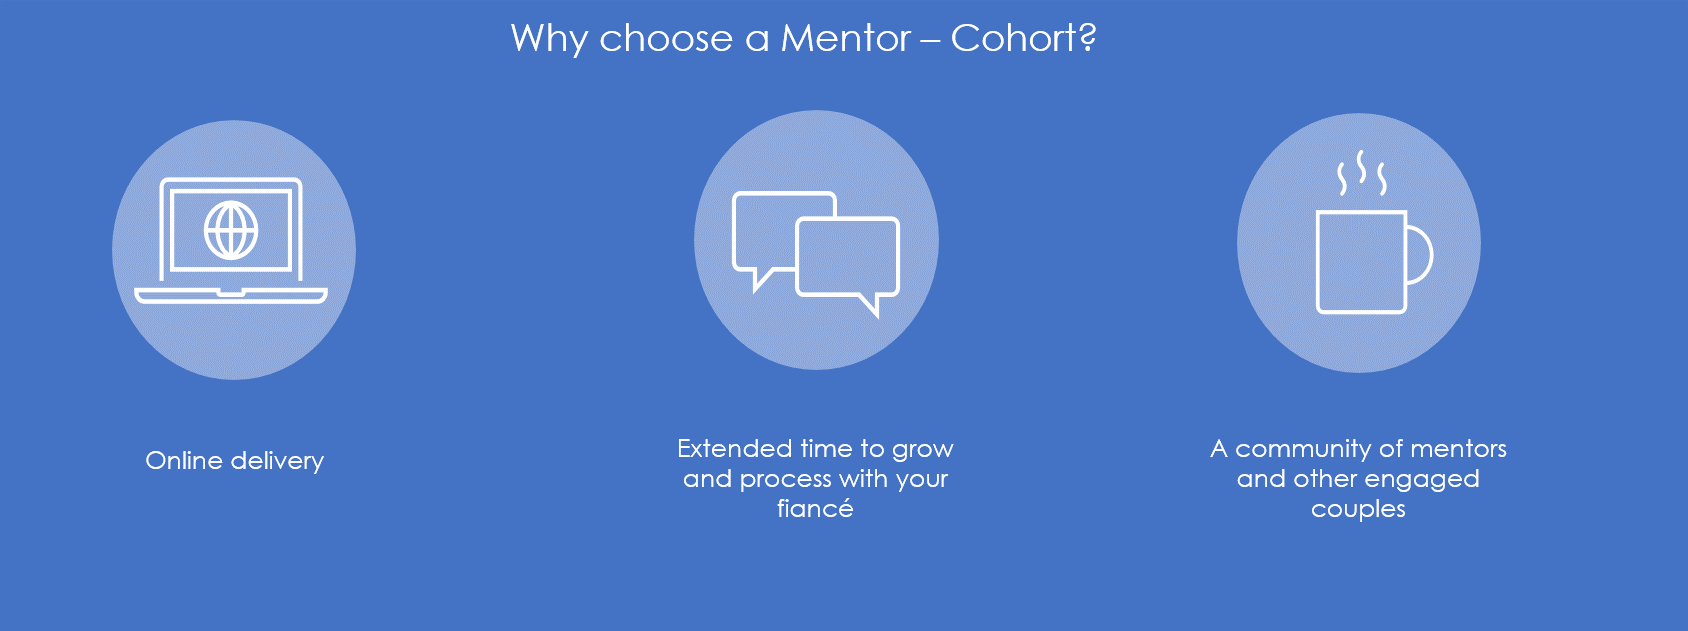 why mentor cohort